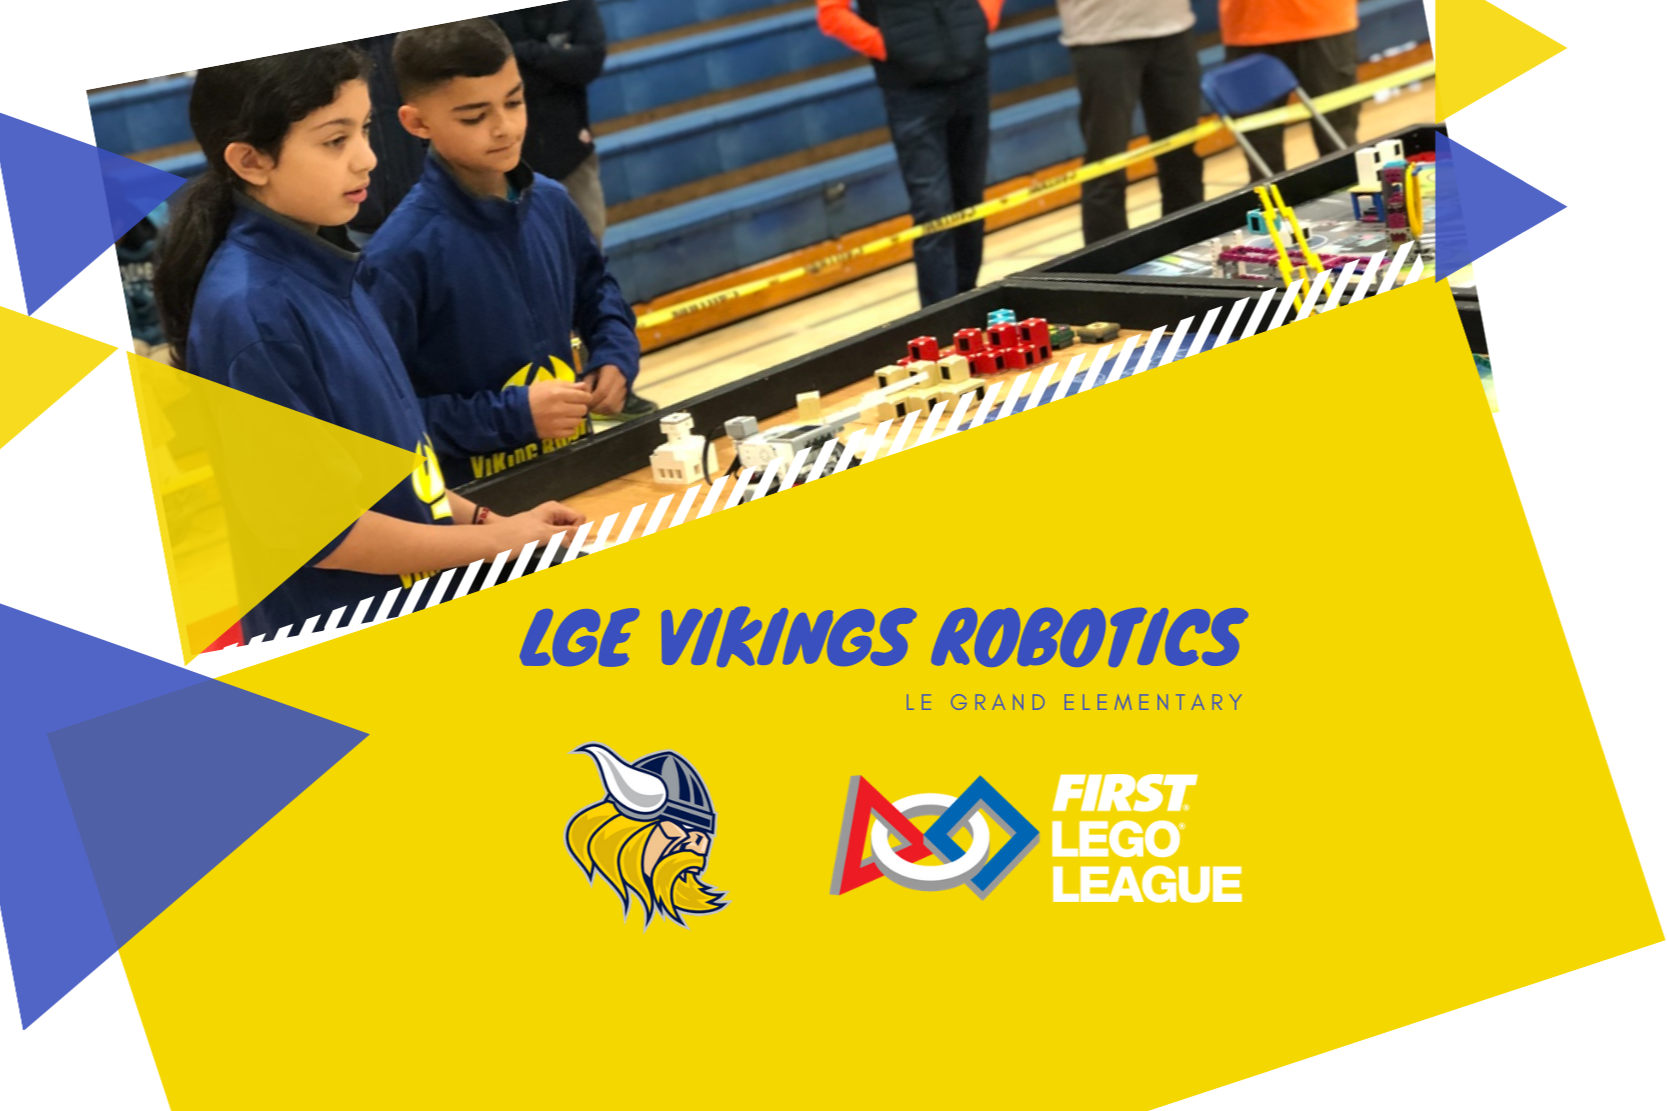 Viking Robotics